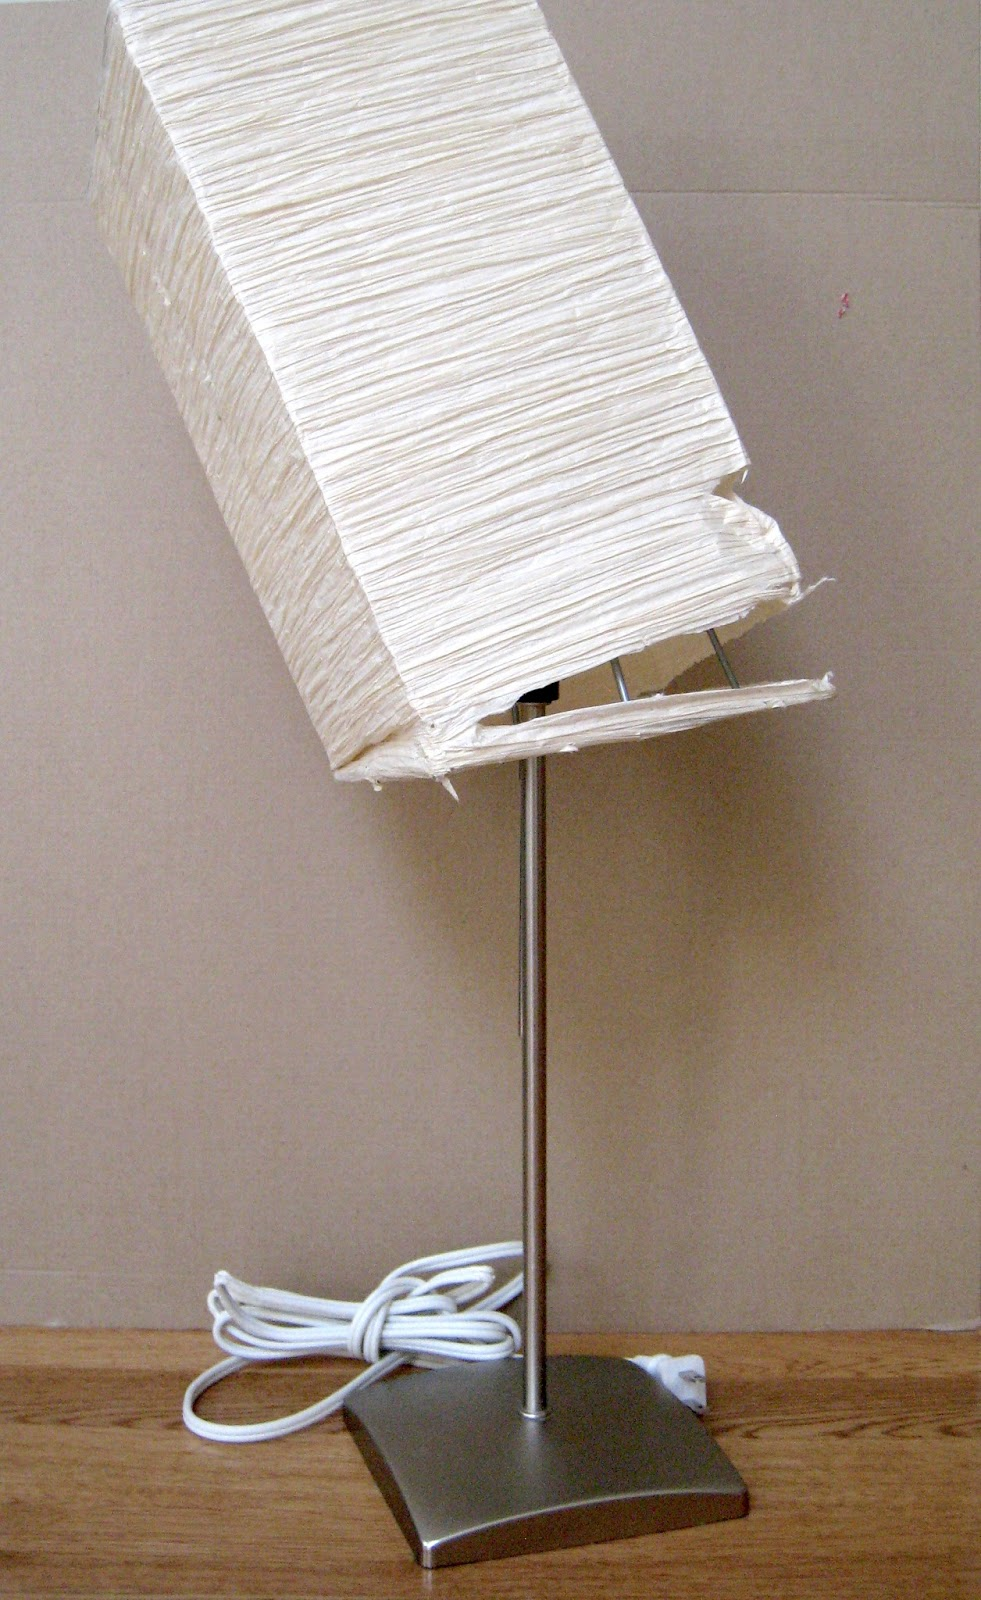 DIY: IKEA Orgel Lamp Shades - Part 1